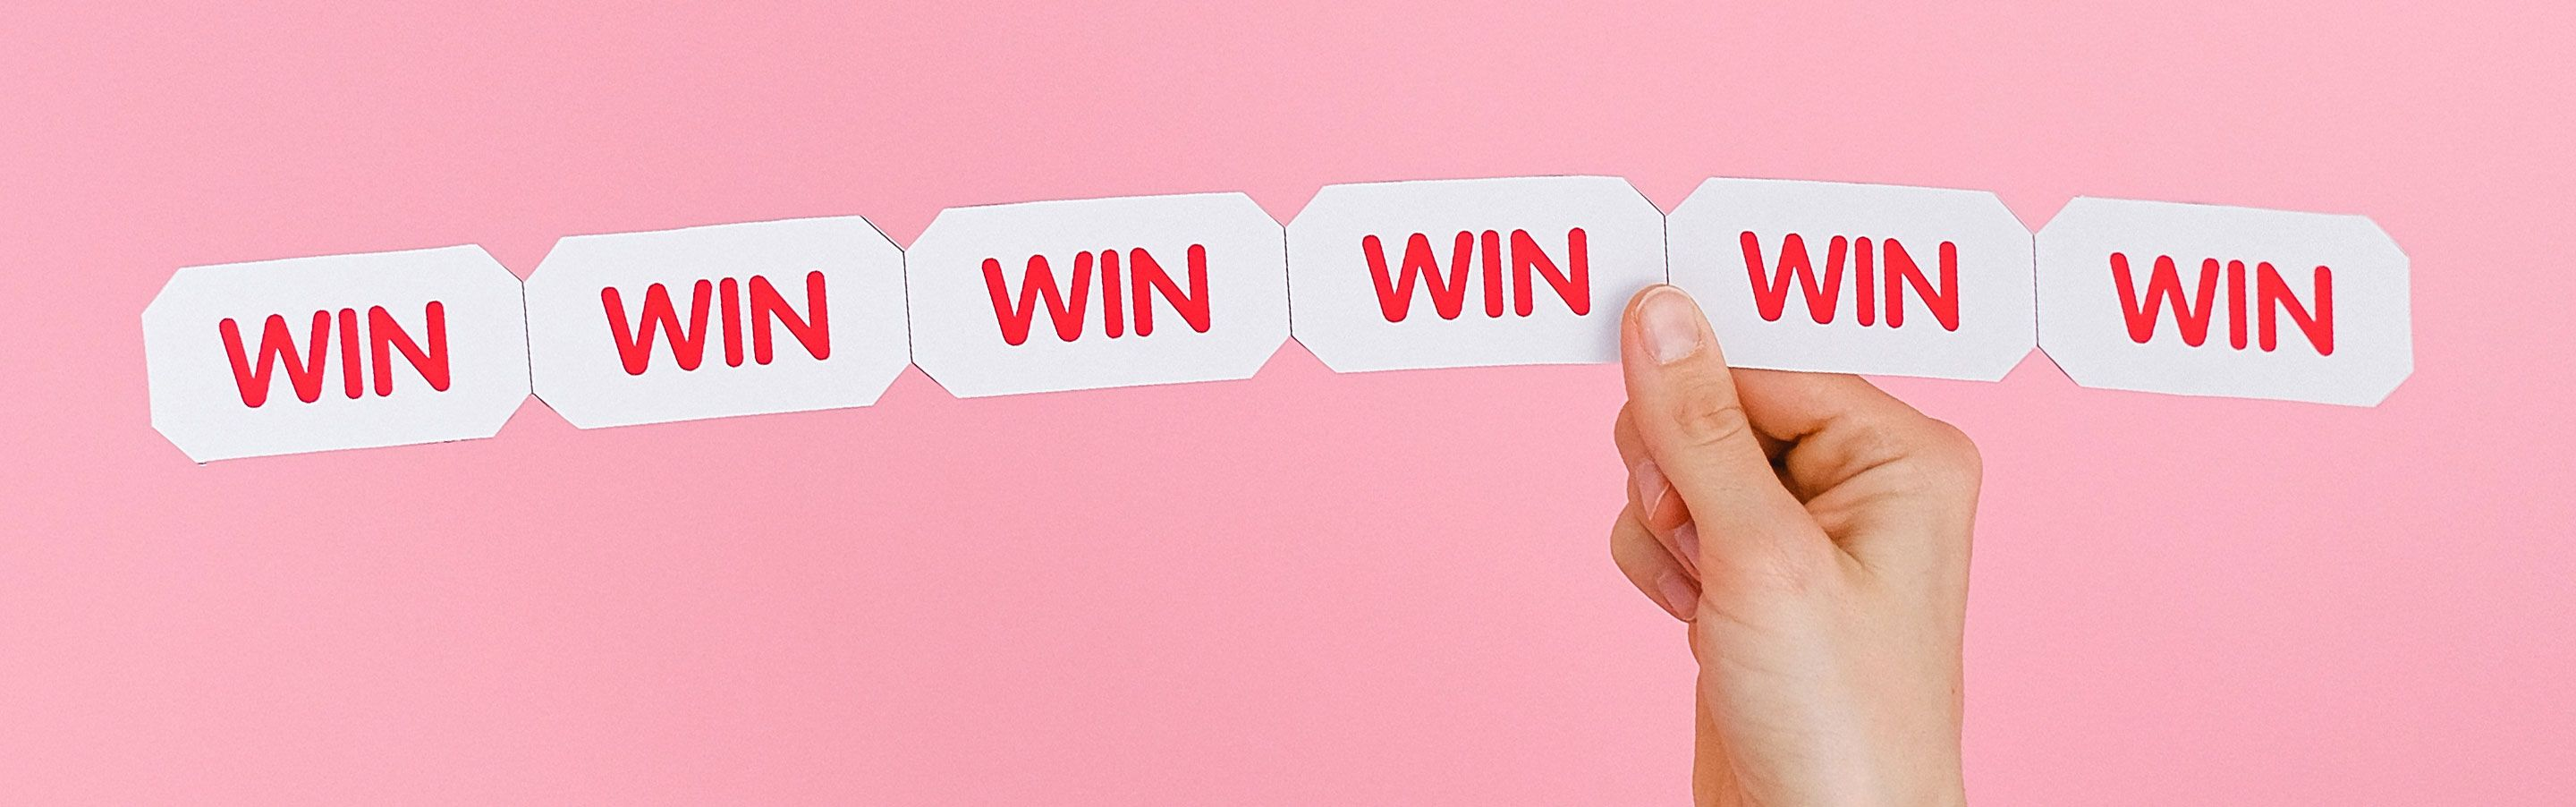 Get the win and make your freelance projects a success